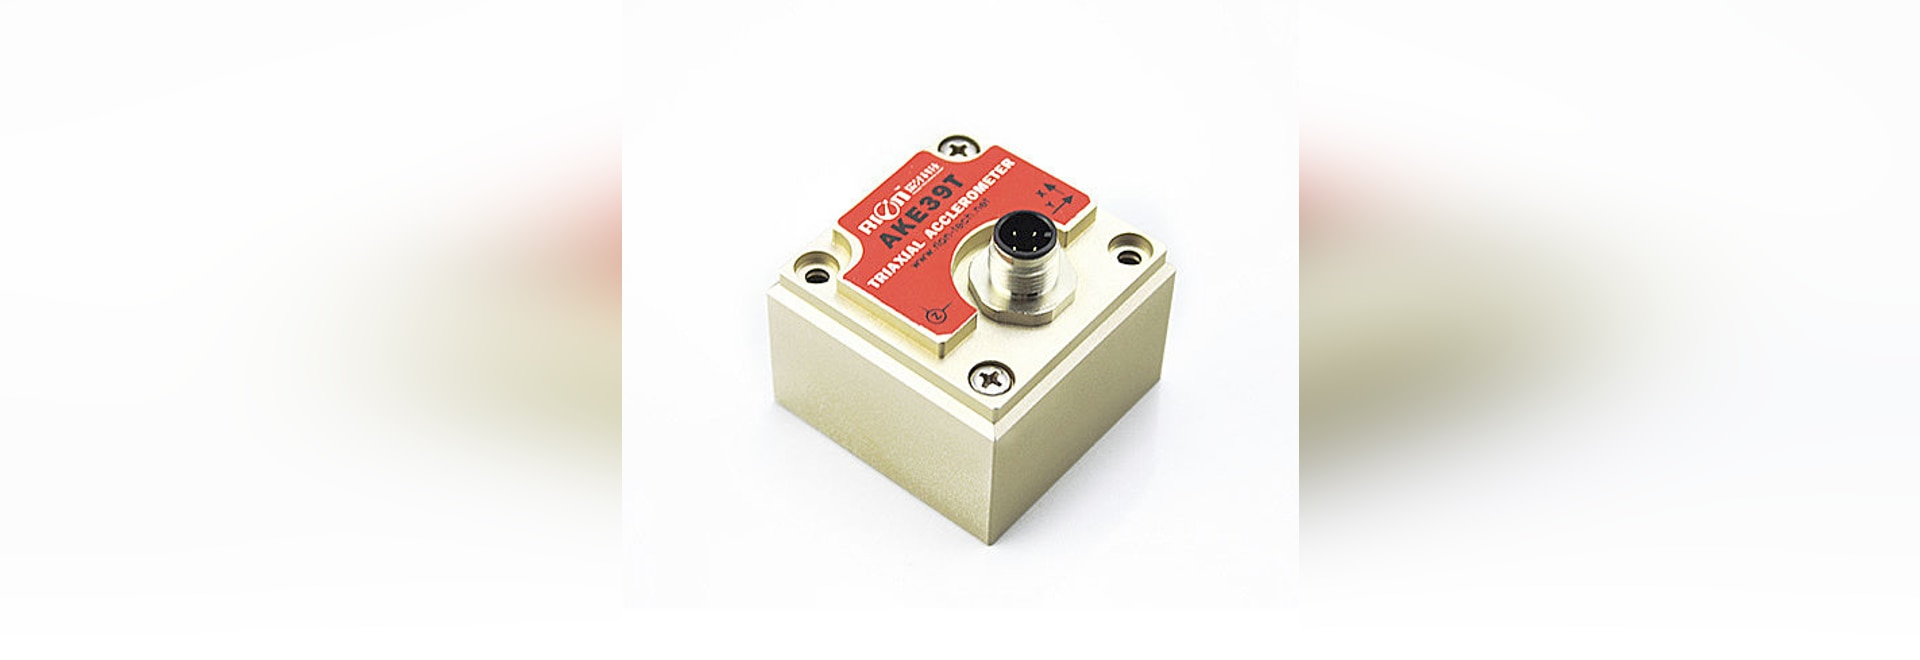 Three Axis MEMS Accelerometer Digital/Anolog Output Factory